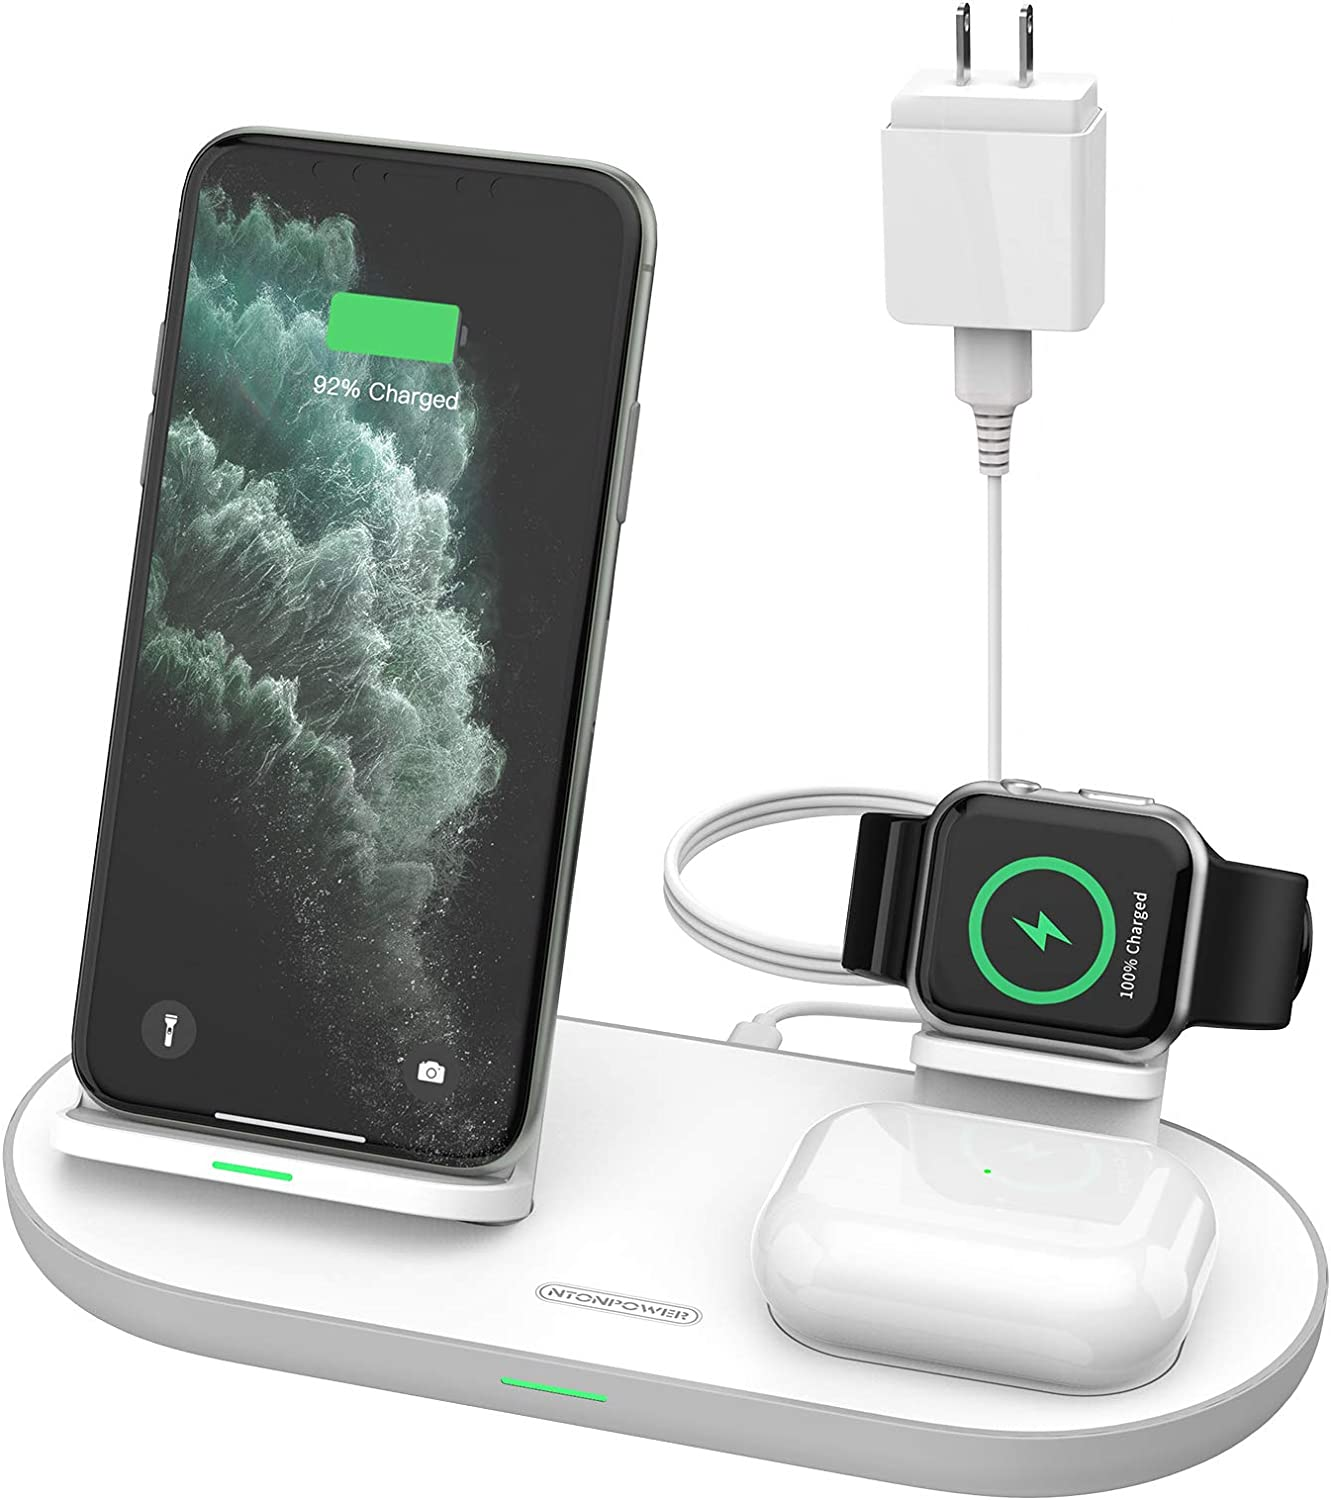 [2020 Latest] Wireless Charger, NTONPOWER 3 in 1 Wireless Charging Station for Aplpe Watch 6/5/4/3/2/1, Airpods Pro/2, Fast Qi-Certified Wireless Stand for iPhone 12/12 Mini/12 Pro/12 Pro Max/SE2